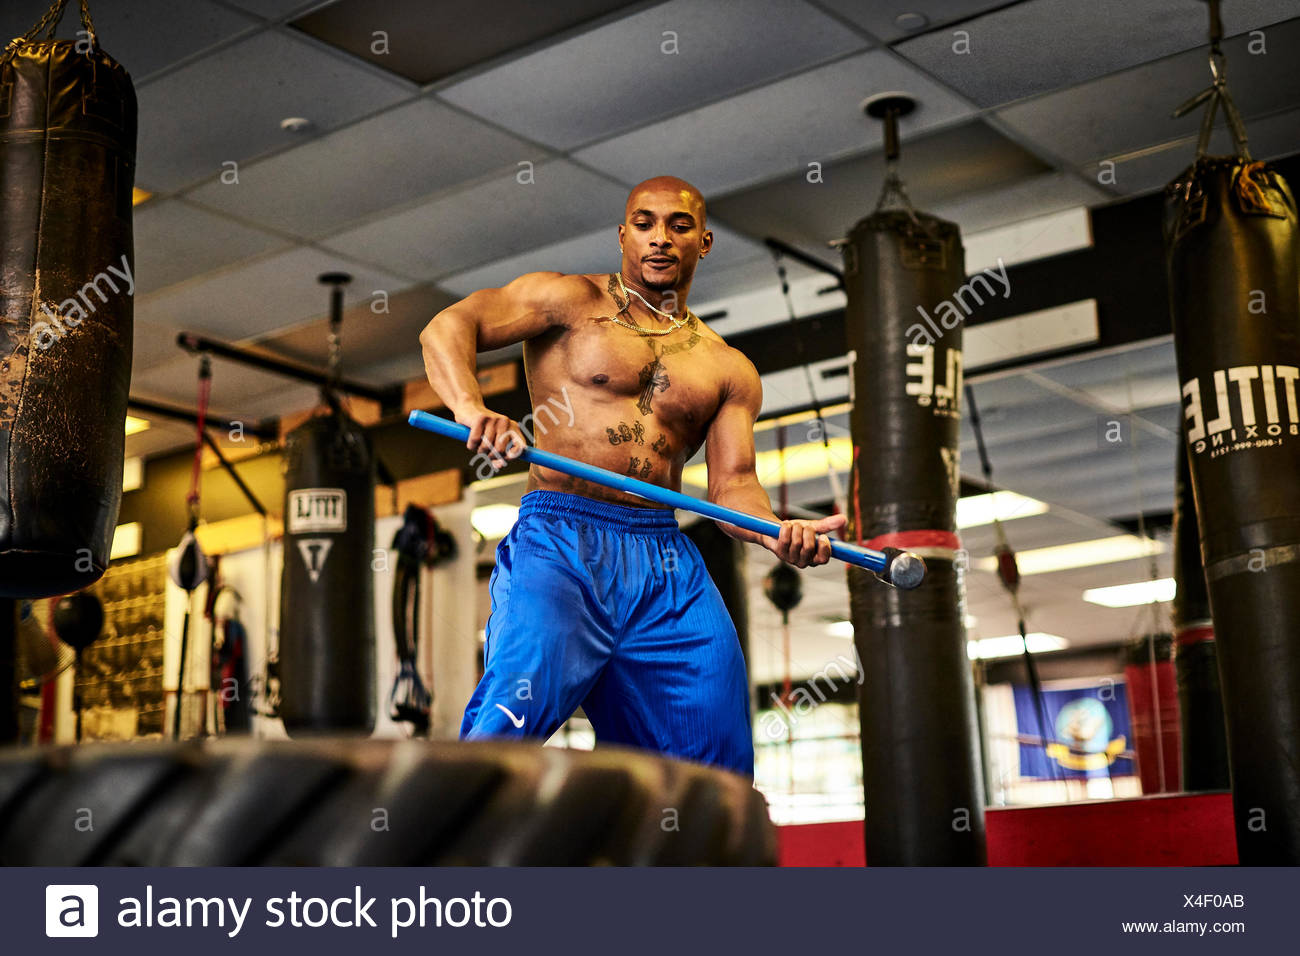 Shirtless athlete training in gym with tire and sledgehammer, Taunton, Massachusetts, USA - Stock Image